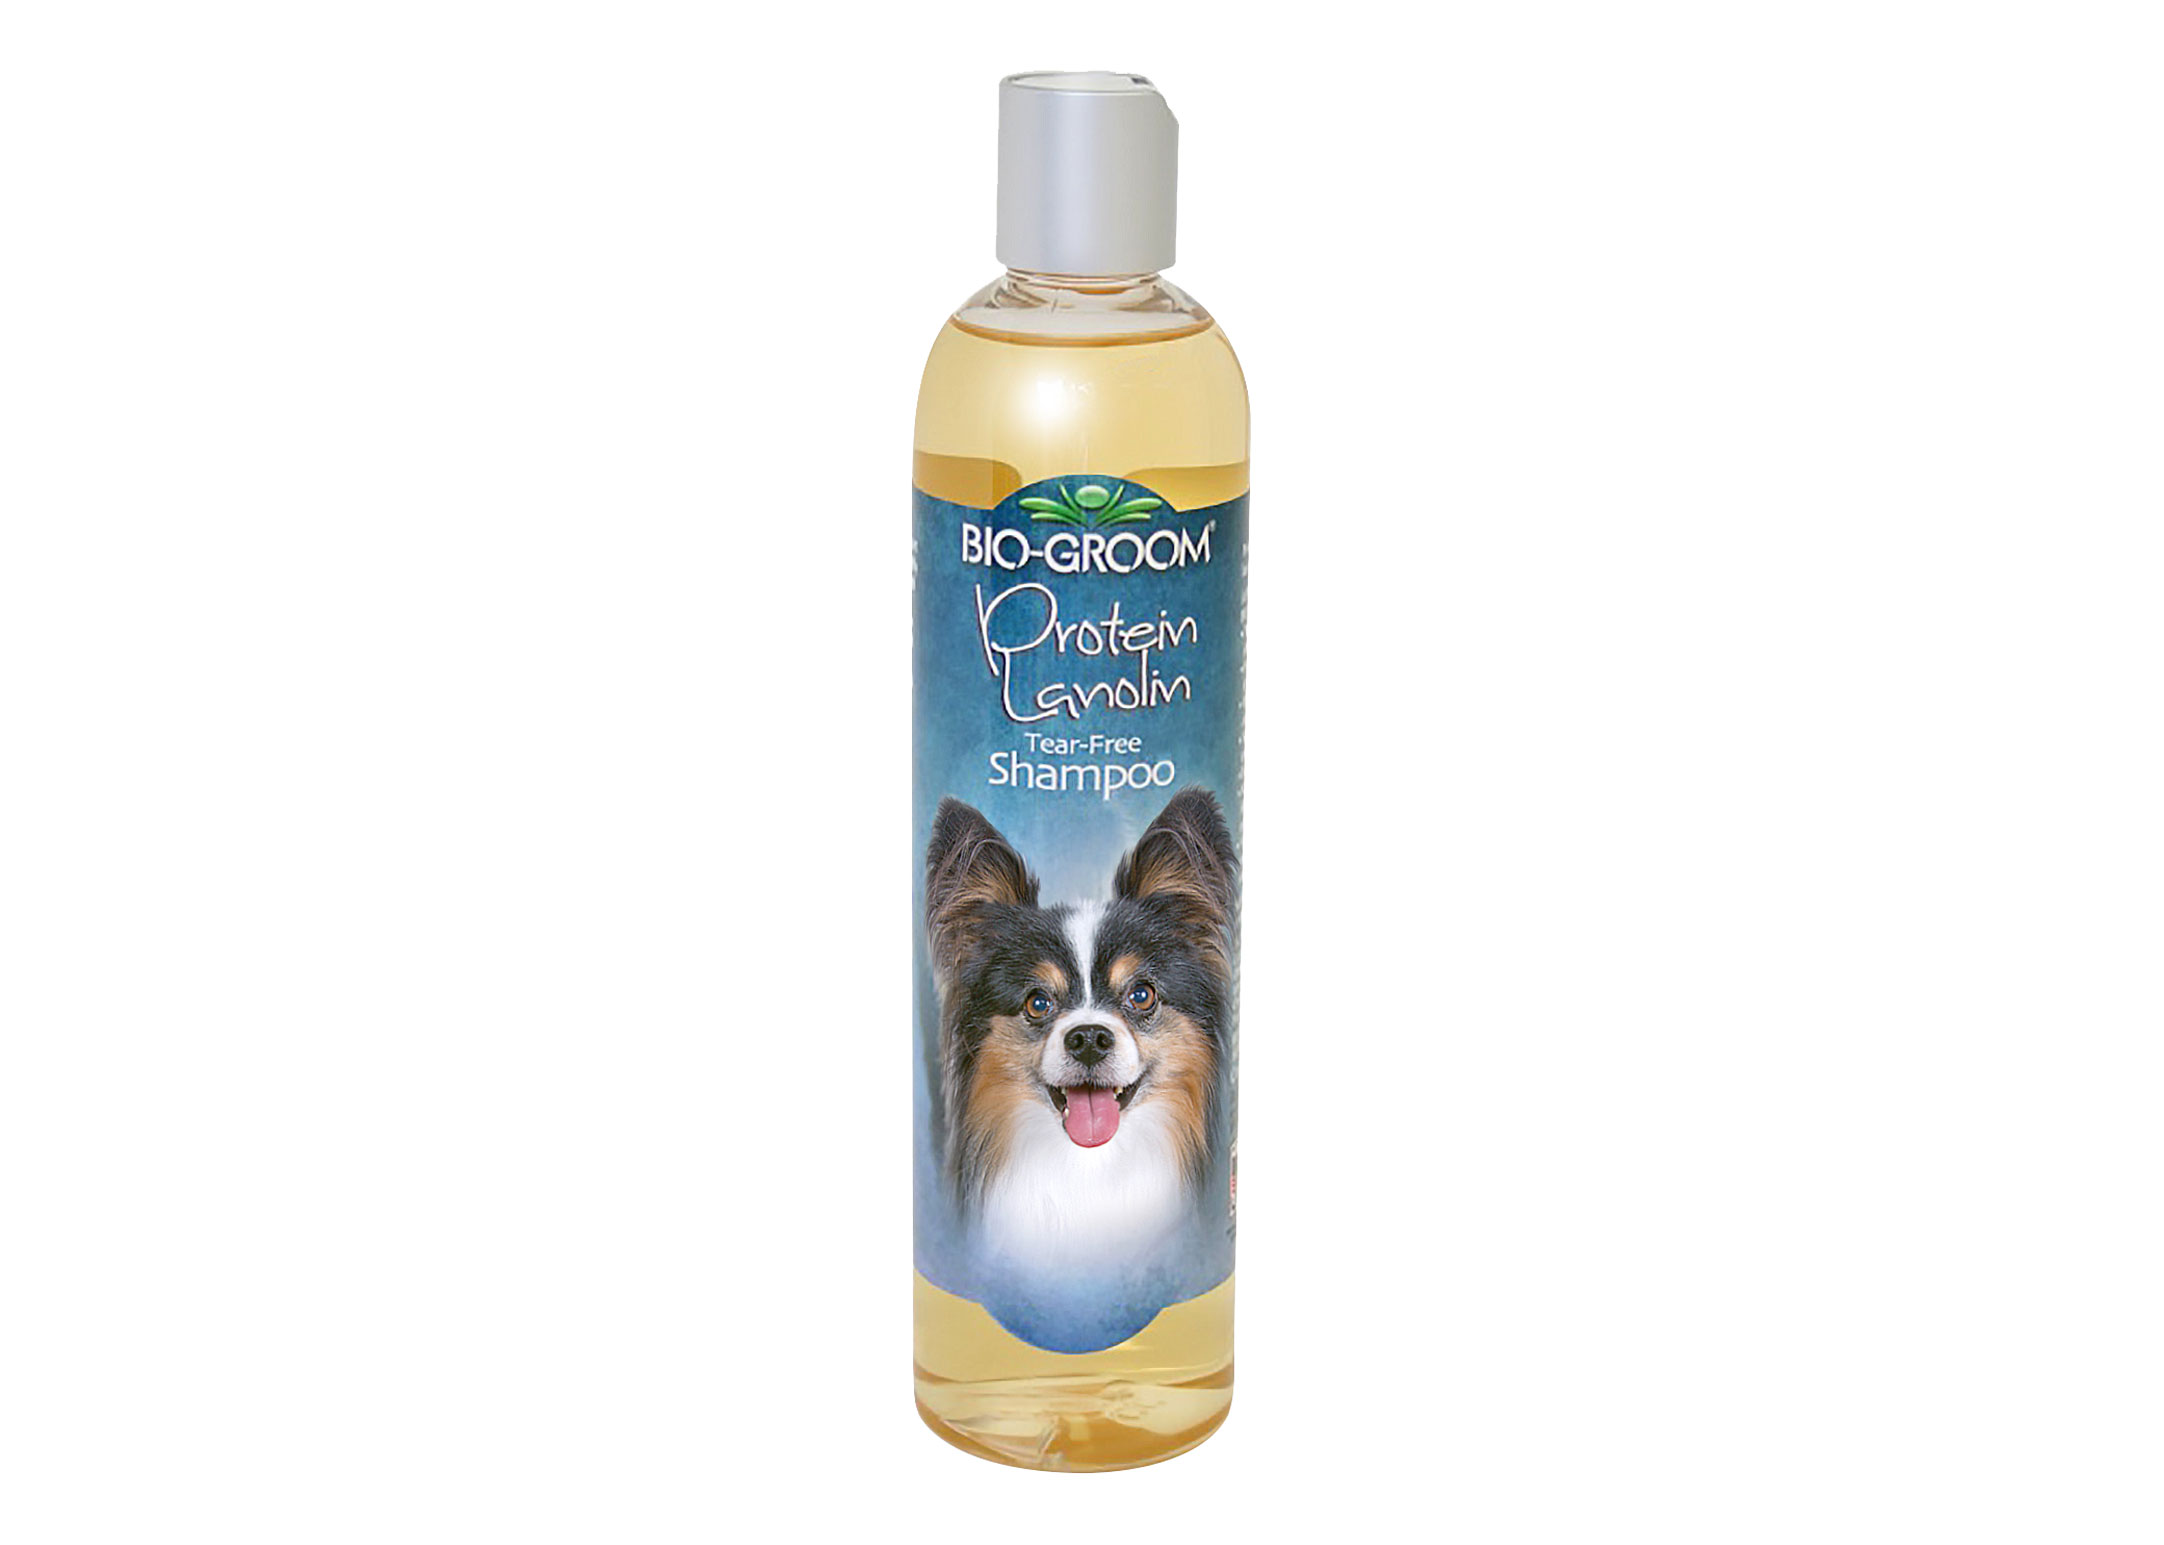 Bio Groom Protein Lanolin Shampoo For Dogs, Cats And Horses